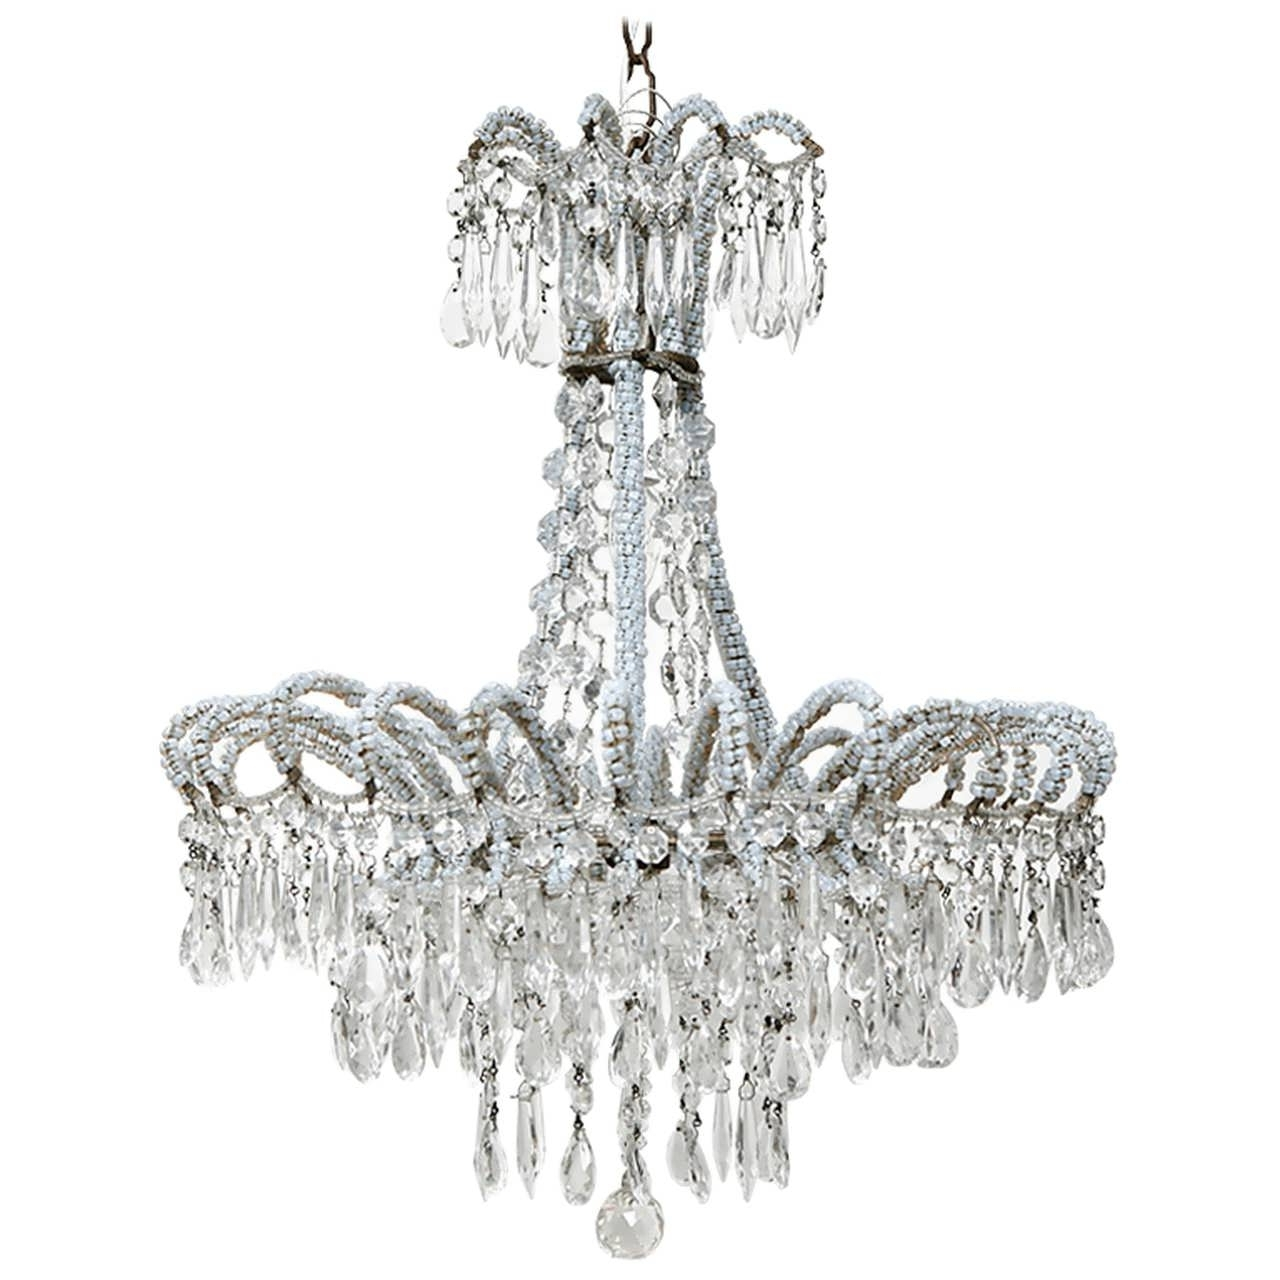 Chandelier : Orb Chandelier Candle Chandelier Italian Chandelier Regarding Current Italian Chandeliers Style (View 12 of 20)